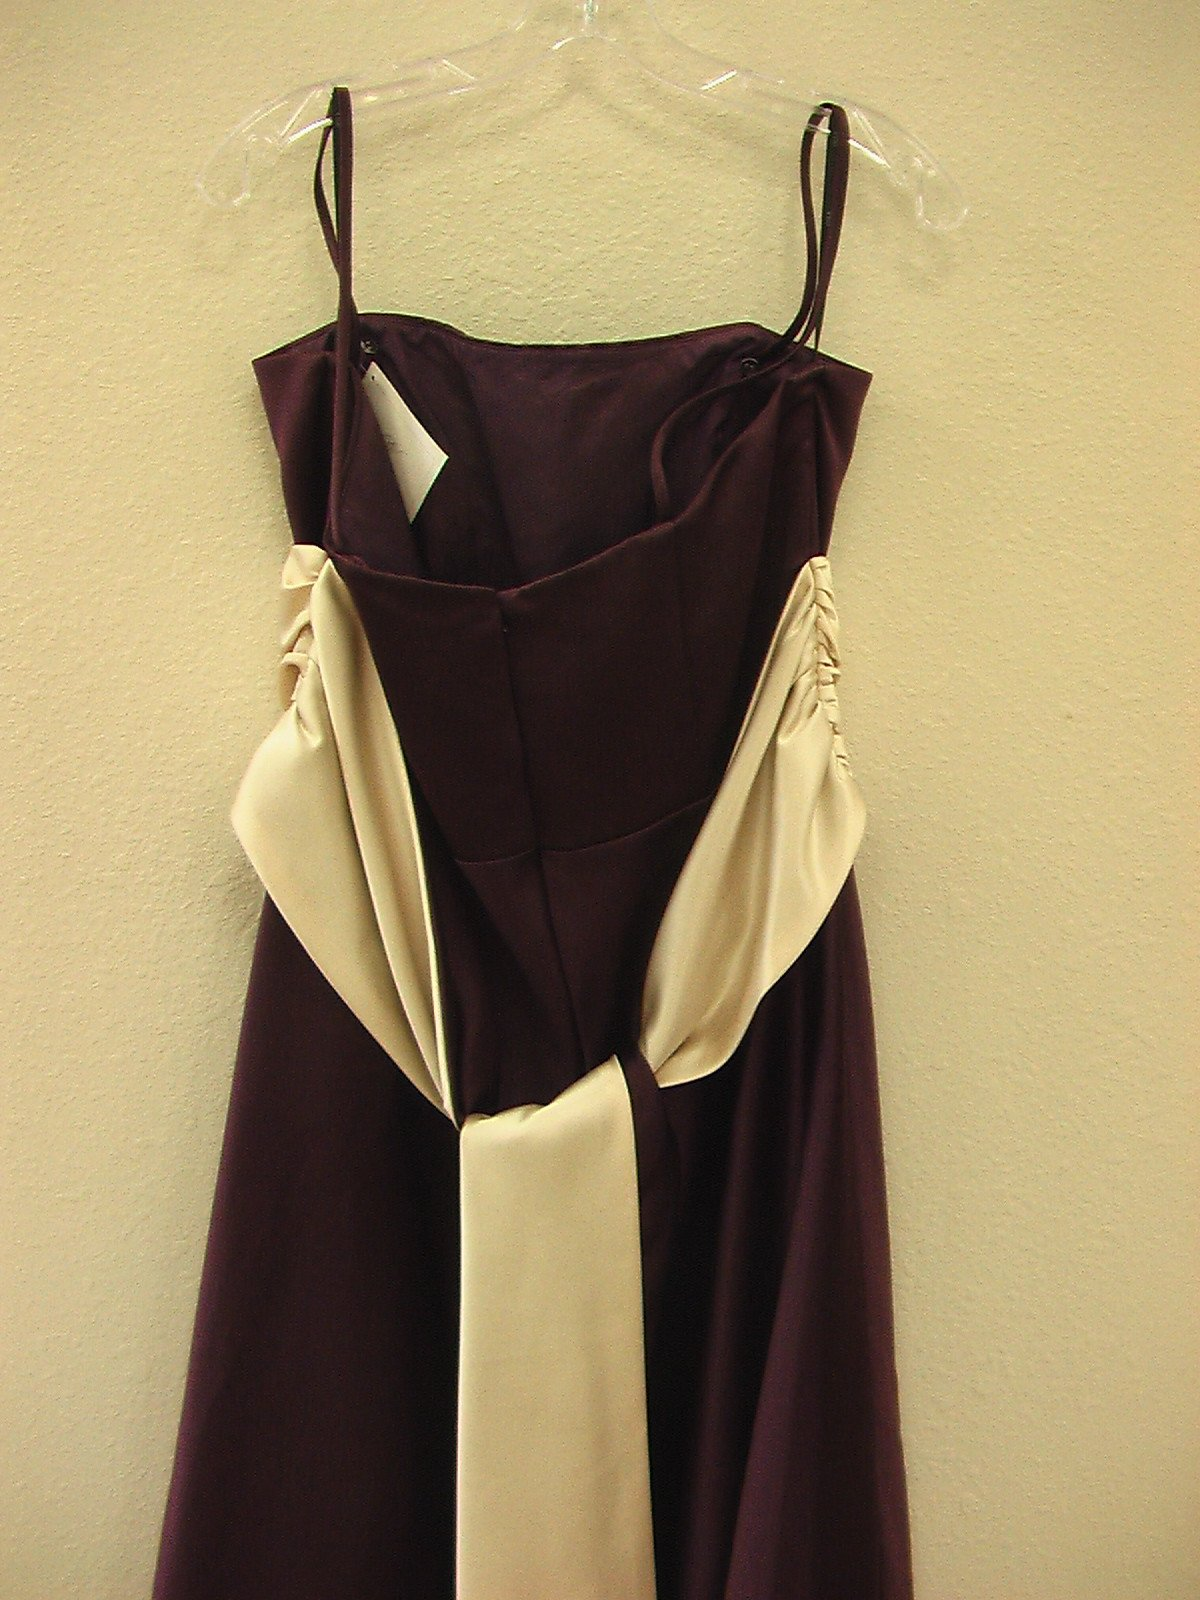 Wtoo 443 Plum Khaki size 12 In Stock Bridesmaid Dress-NEW - Tom's Bridal